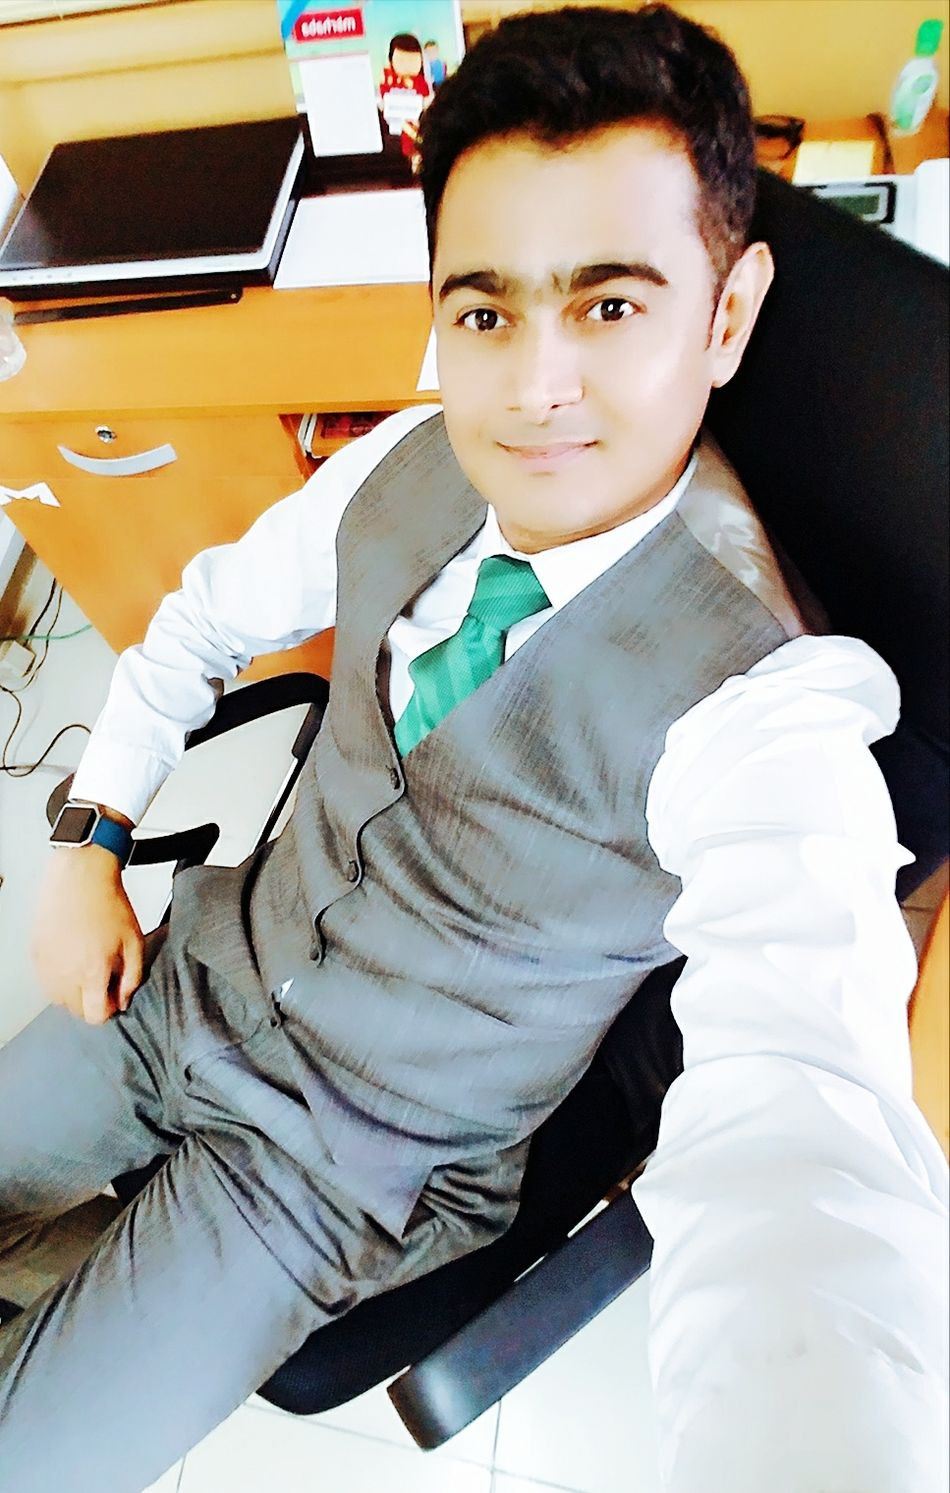 Looking At Camera One Person Portrait Indoors  Sitting Adults Only Adult Today's Hot Look That's Me HERO MFR Its Me Mfrbphotography Karachi Man Cool Pakistan Hi Hello World ThatsMe Rathod Check This Out Lifestyles Well-dressed Confidence